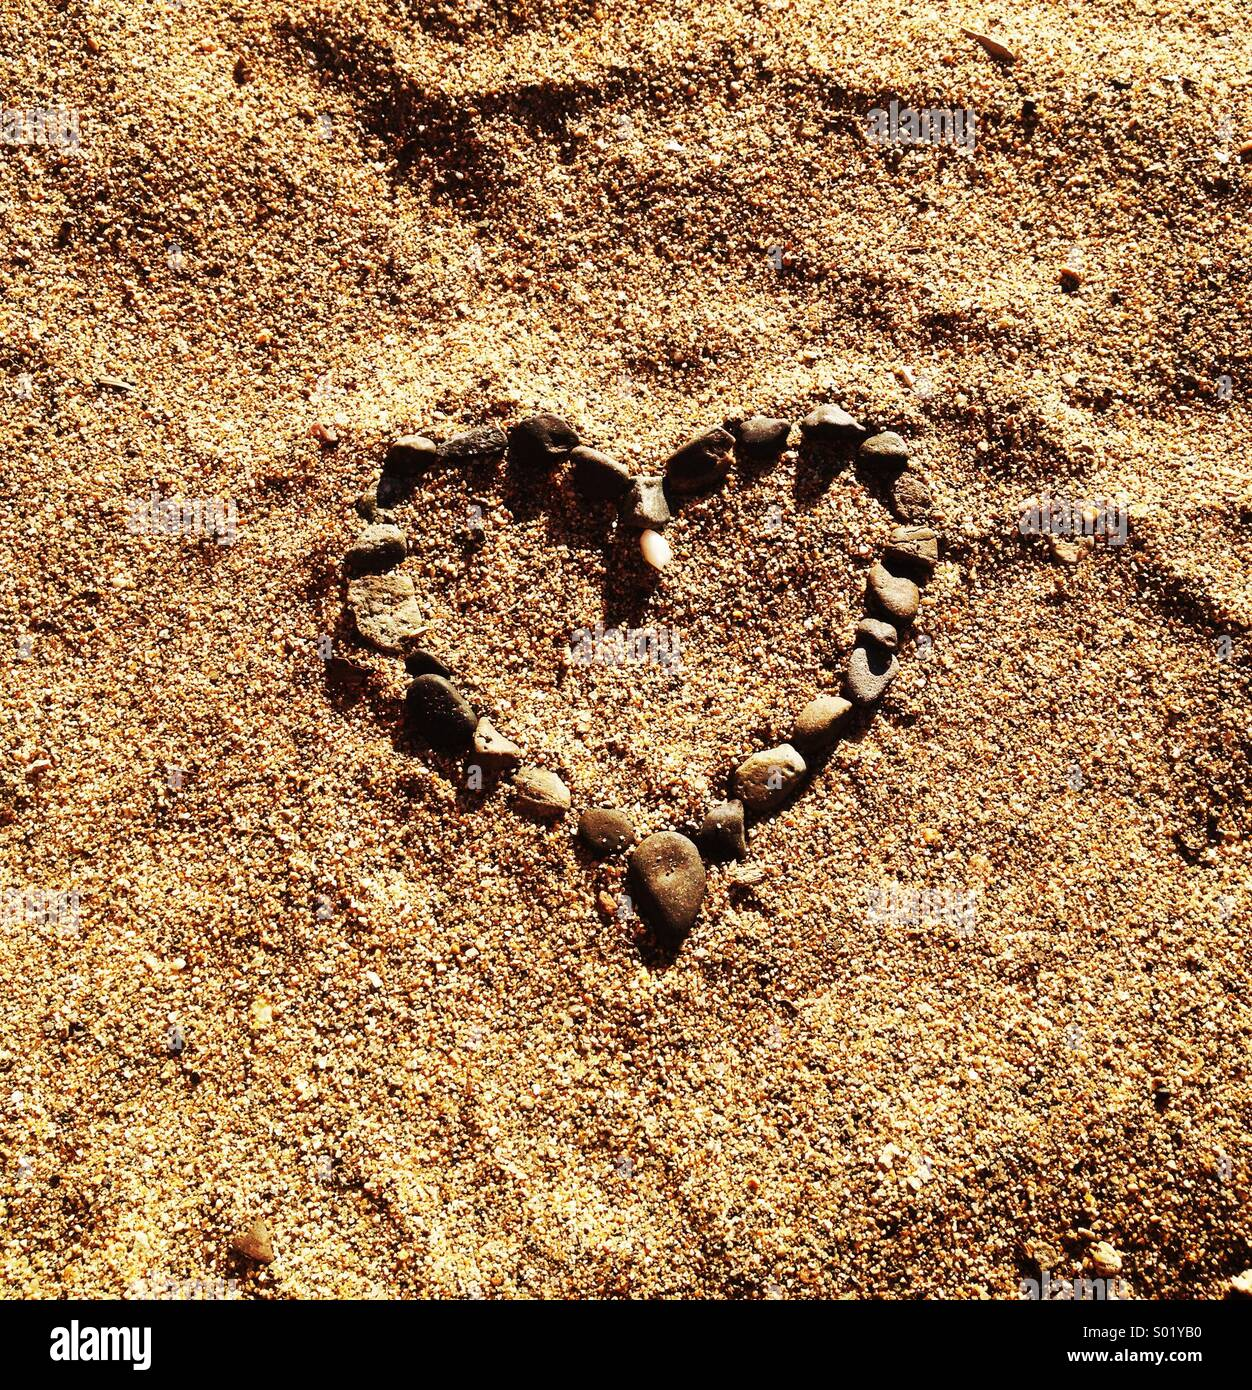 Heart made of pebbles in the sand. - Stock Image